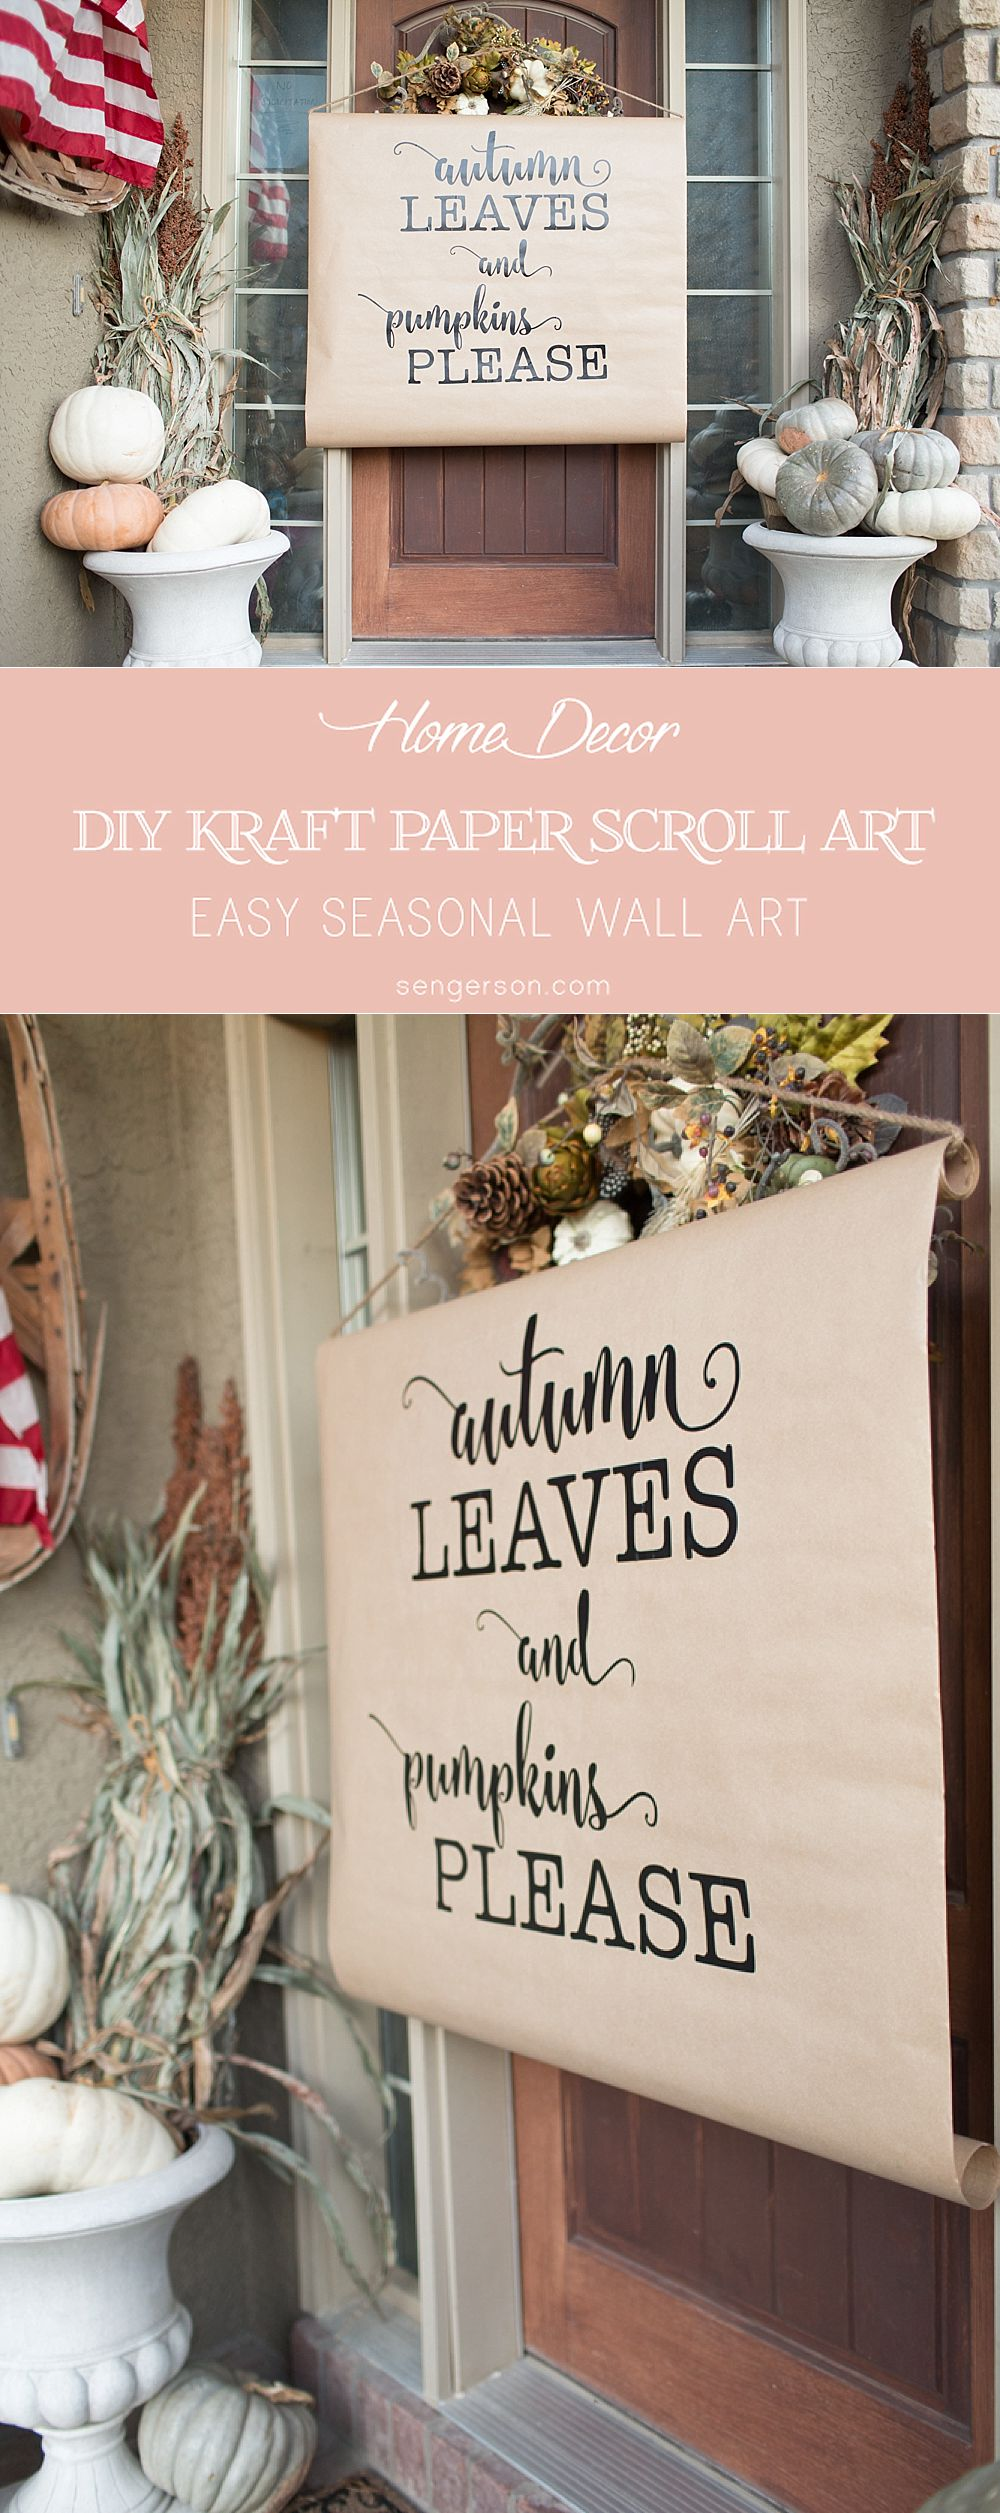 DIY kraft paper scroll art farmhouse style. Super cute and easy to make!